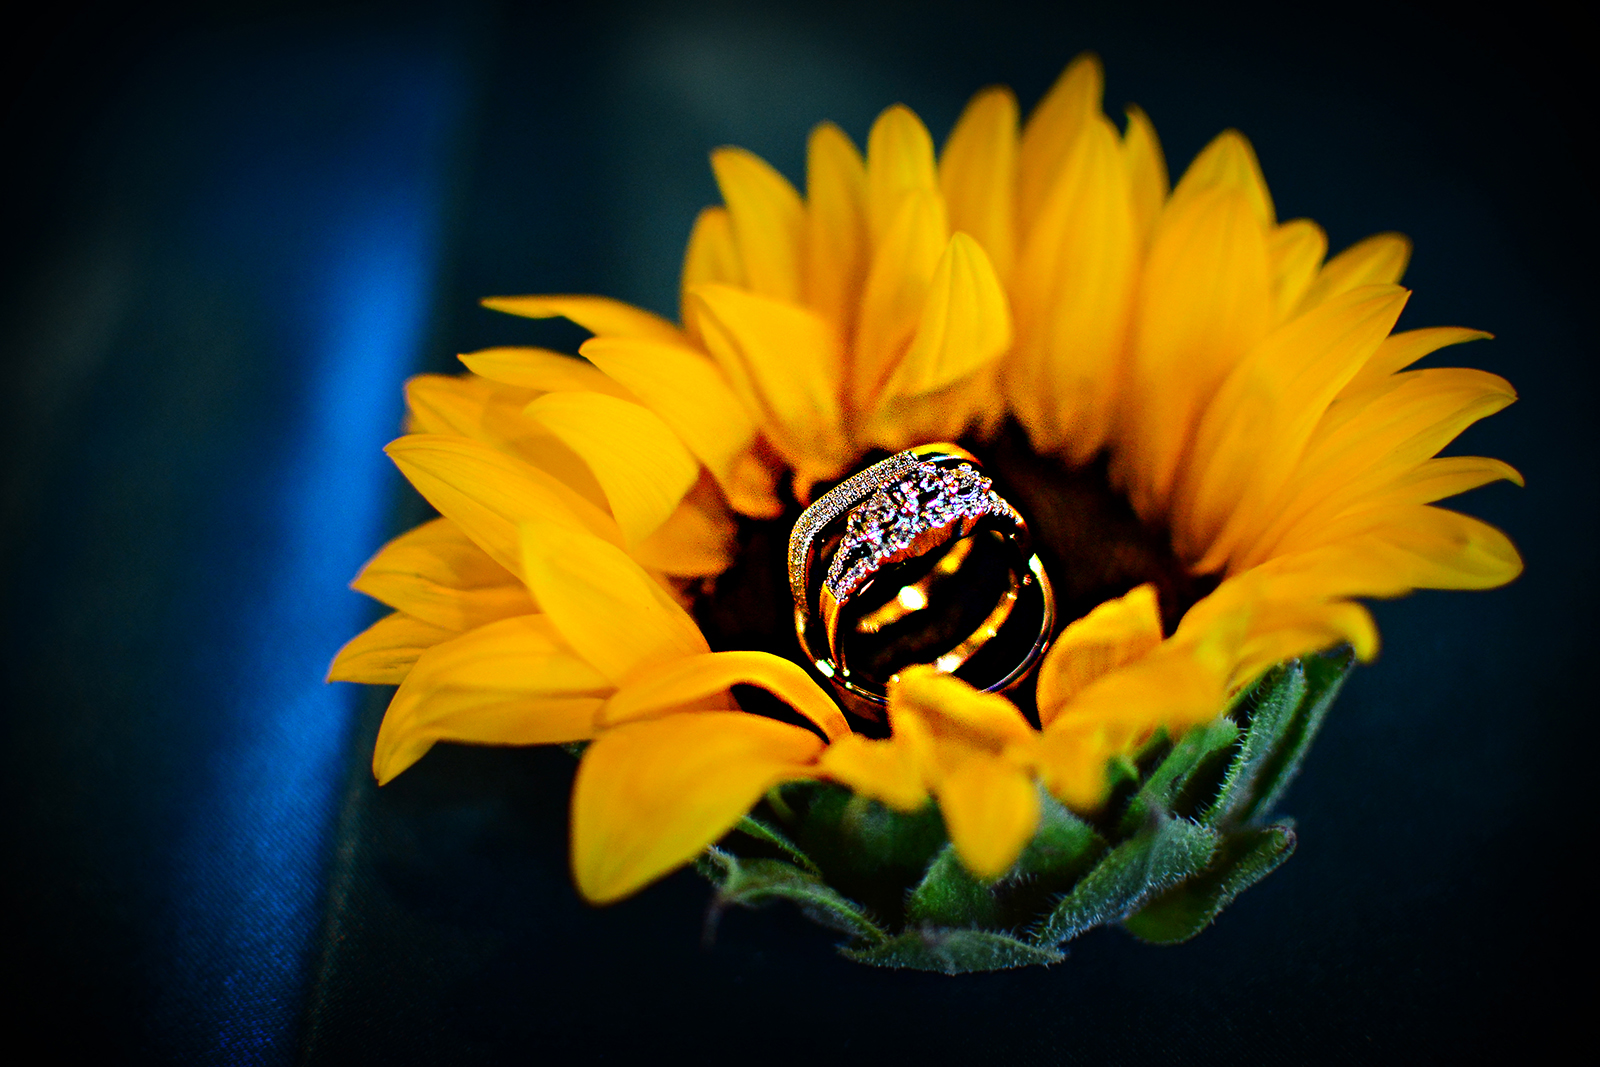 cake, wedding cake, stephy wong photography, wedding details, ring shot, sunflowers wedding